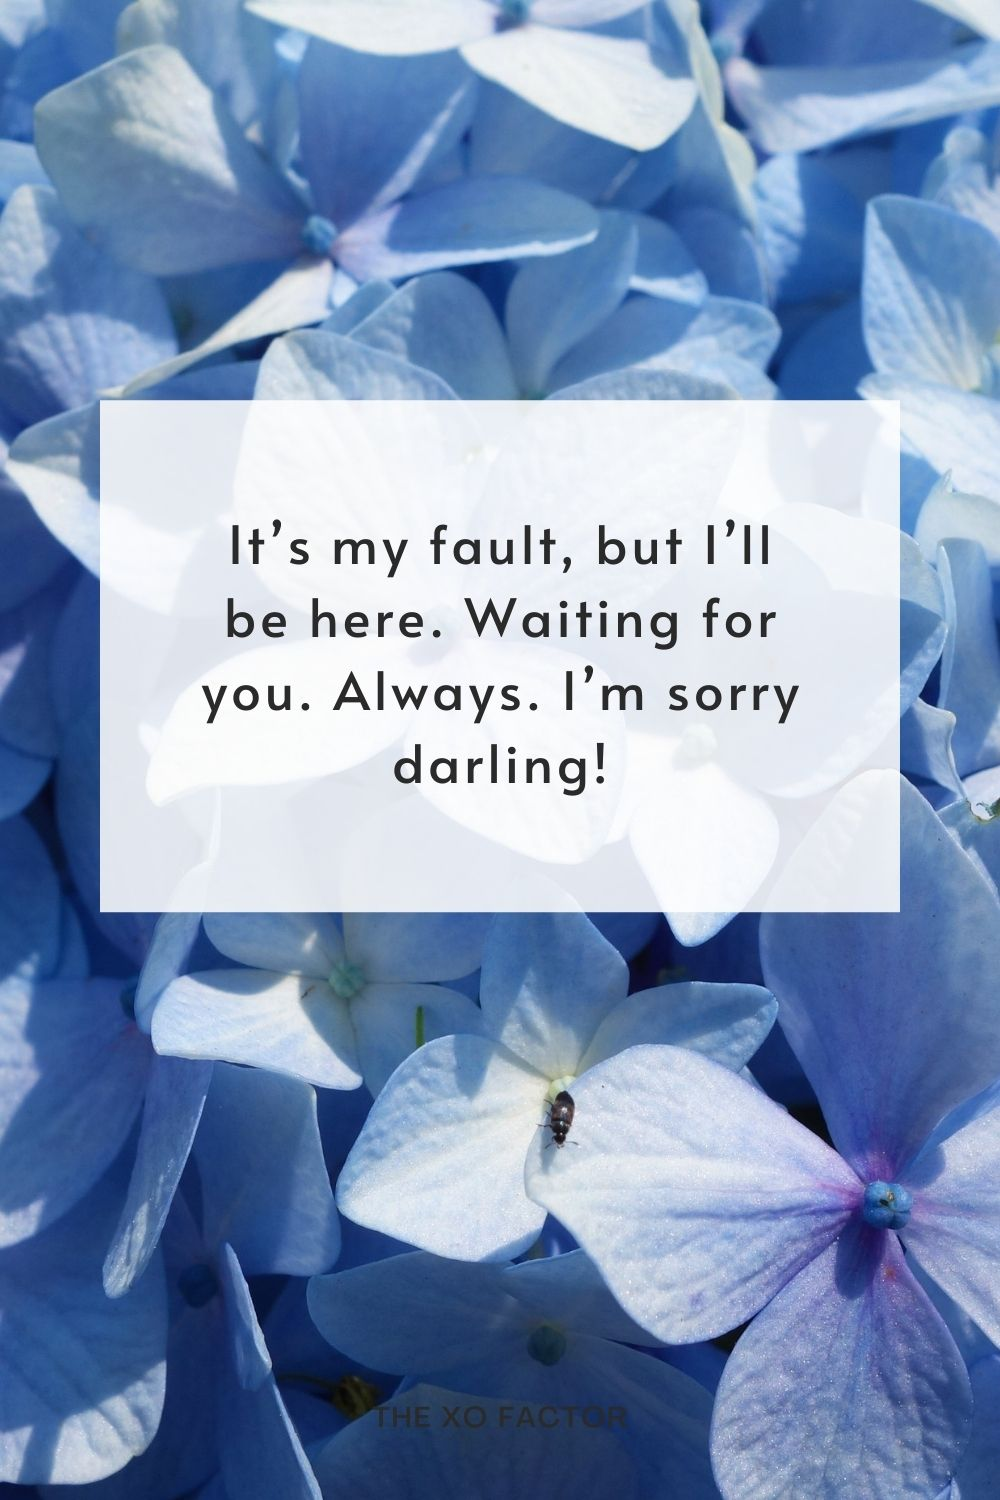 It's my fault, but I'll be here. Waiting for you. Always. I'm sorry darling!